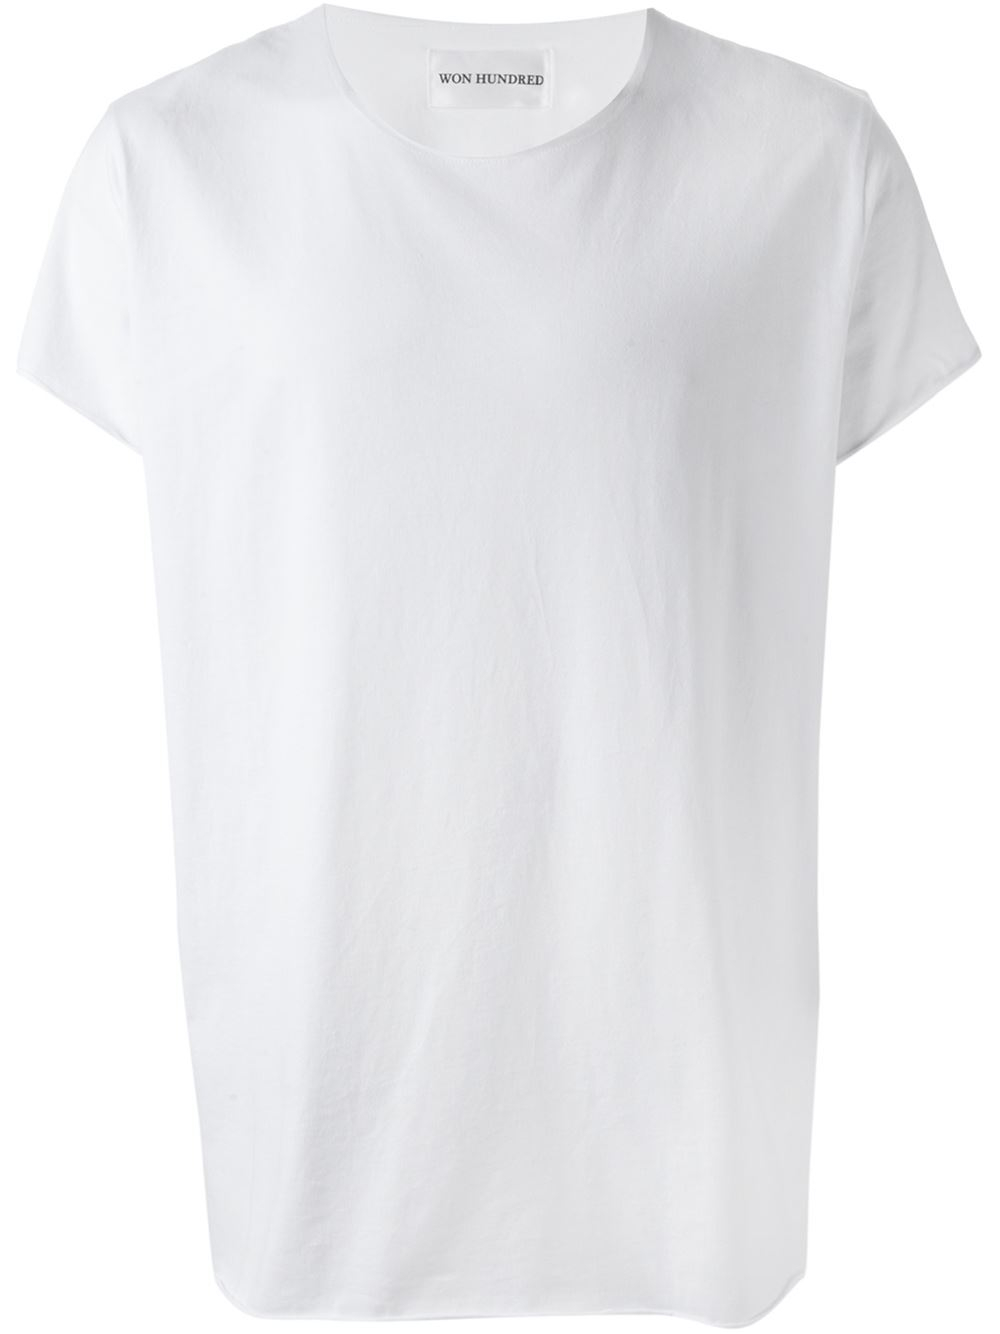 Won hundred crew neck cotton t shirt in white for men lyst for Crew neck white t shirt